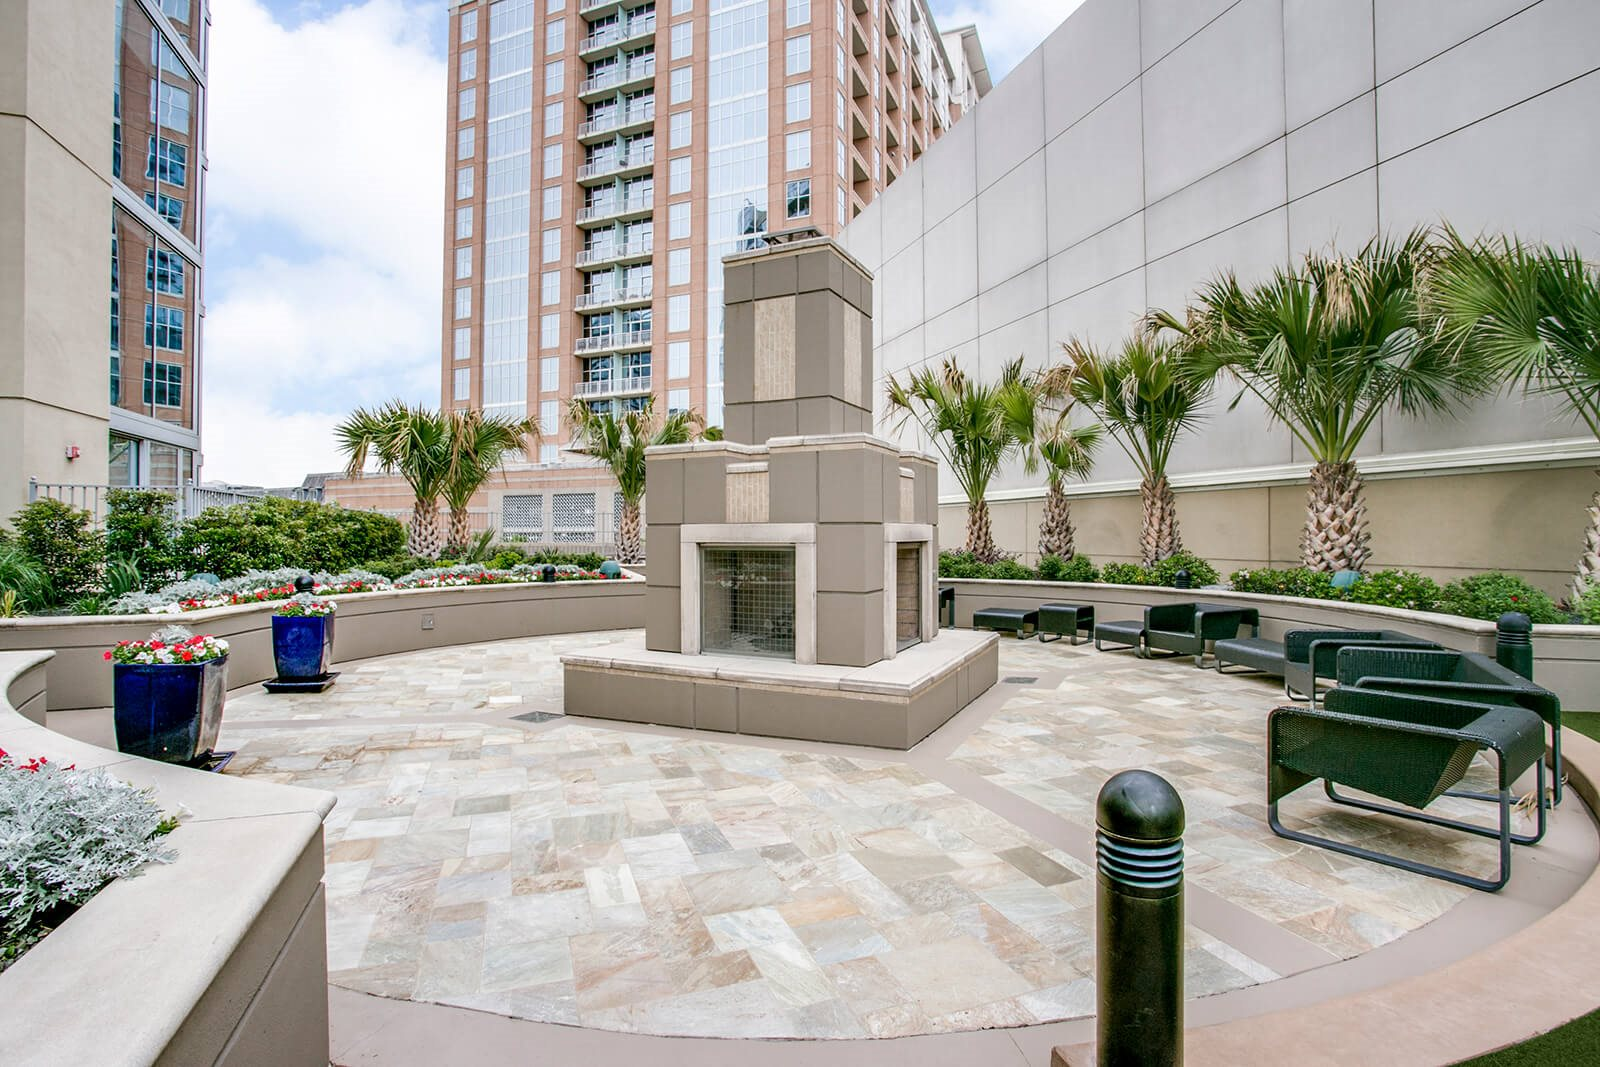 Outdoor Sky Deck with Fireplace and Professional Landscaping at Glass House by Windsor, Texas, 75201